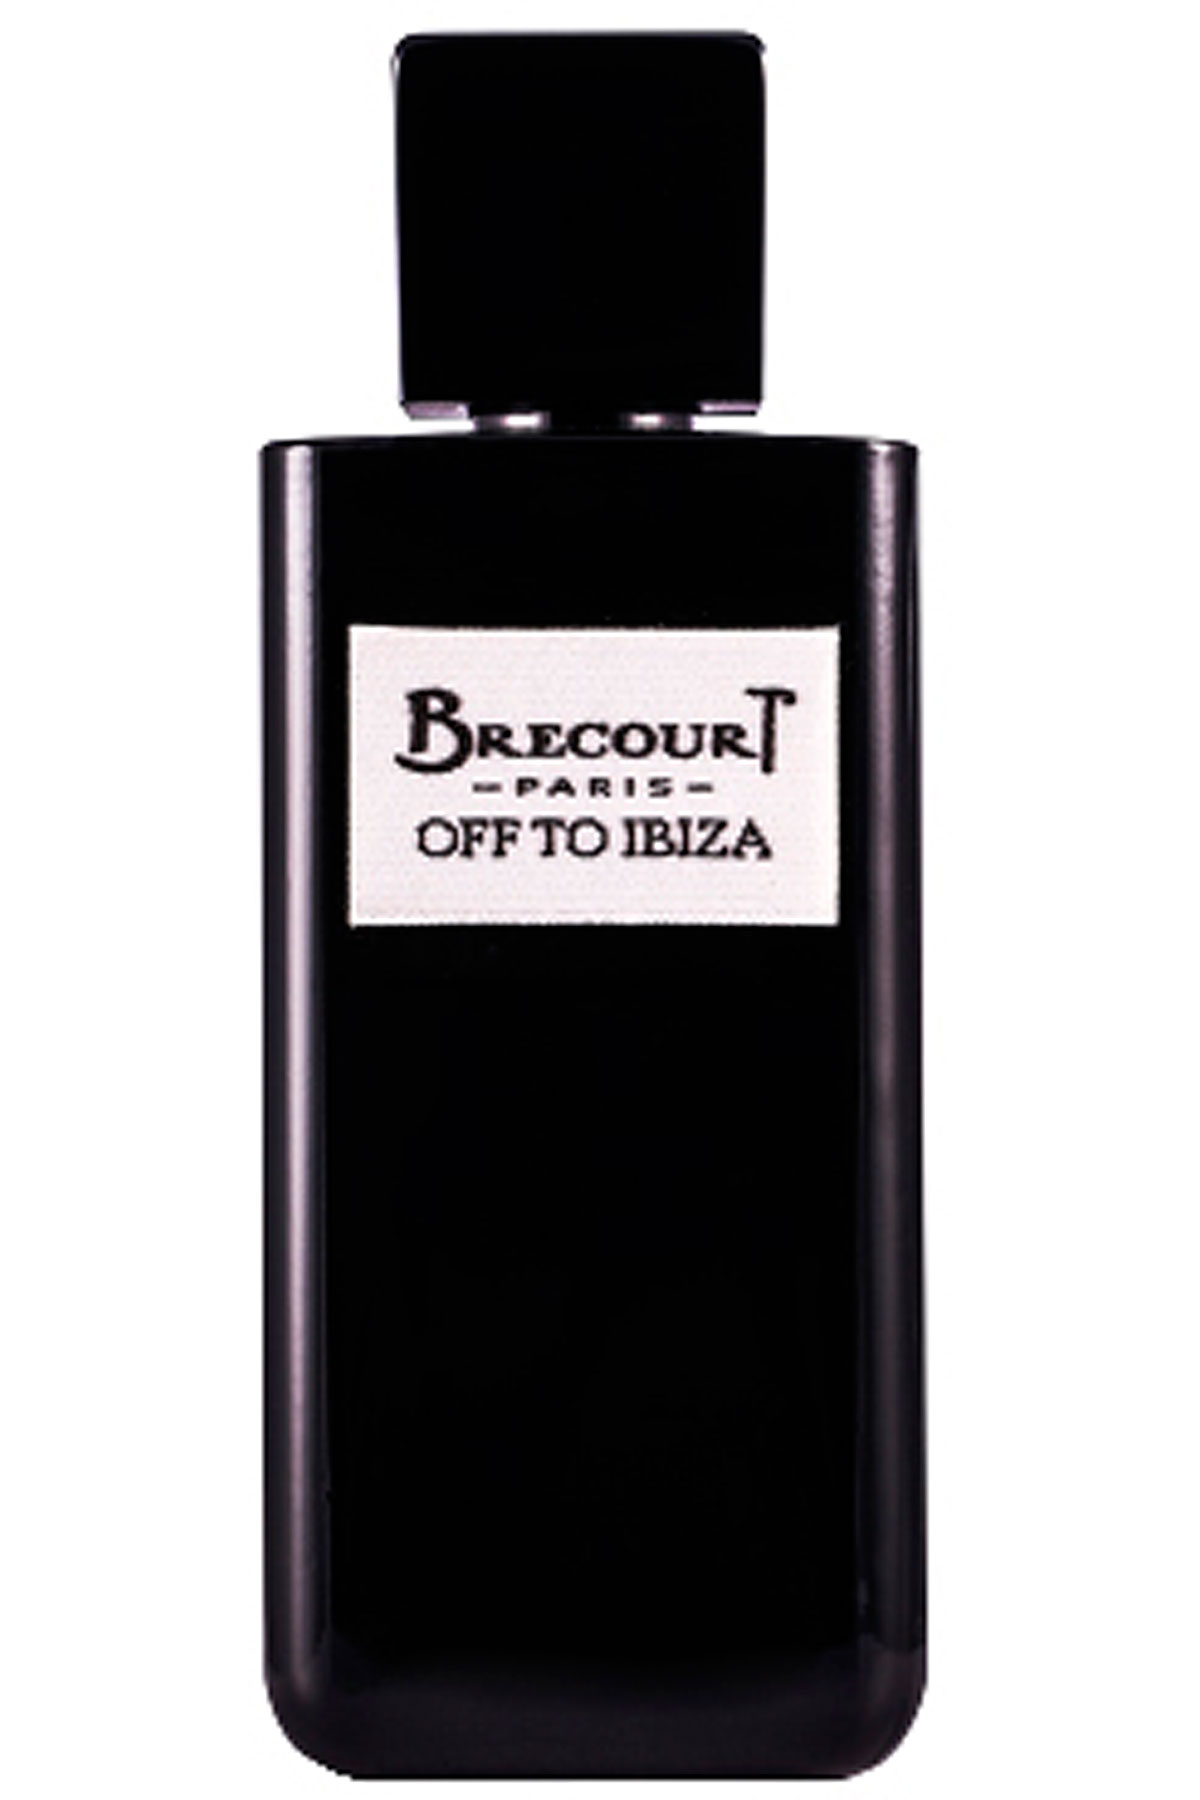 Brecourt Fragrances for Men, Off To Ibiza - Eau De Parfum - 100 Ml, 2019, 100 ml